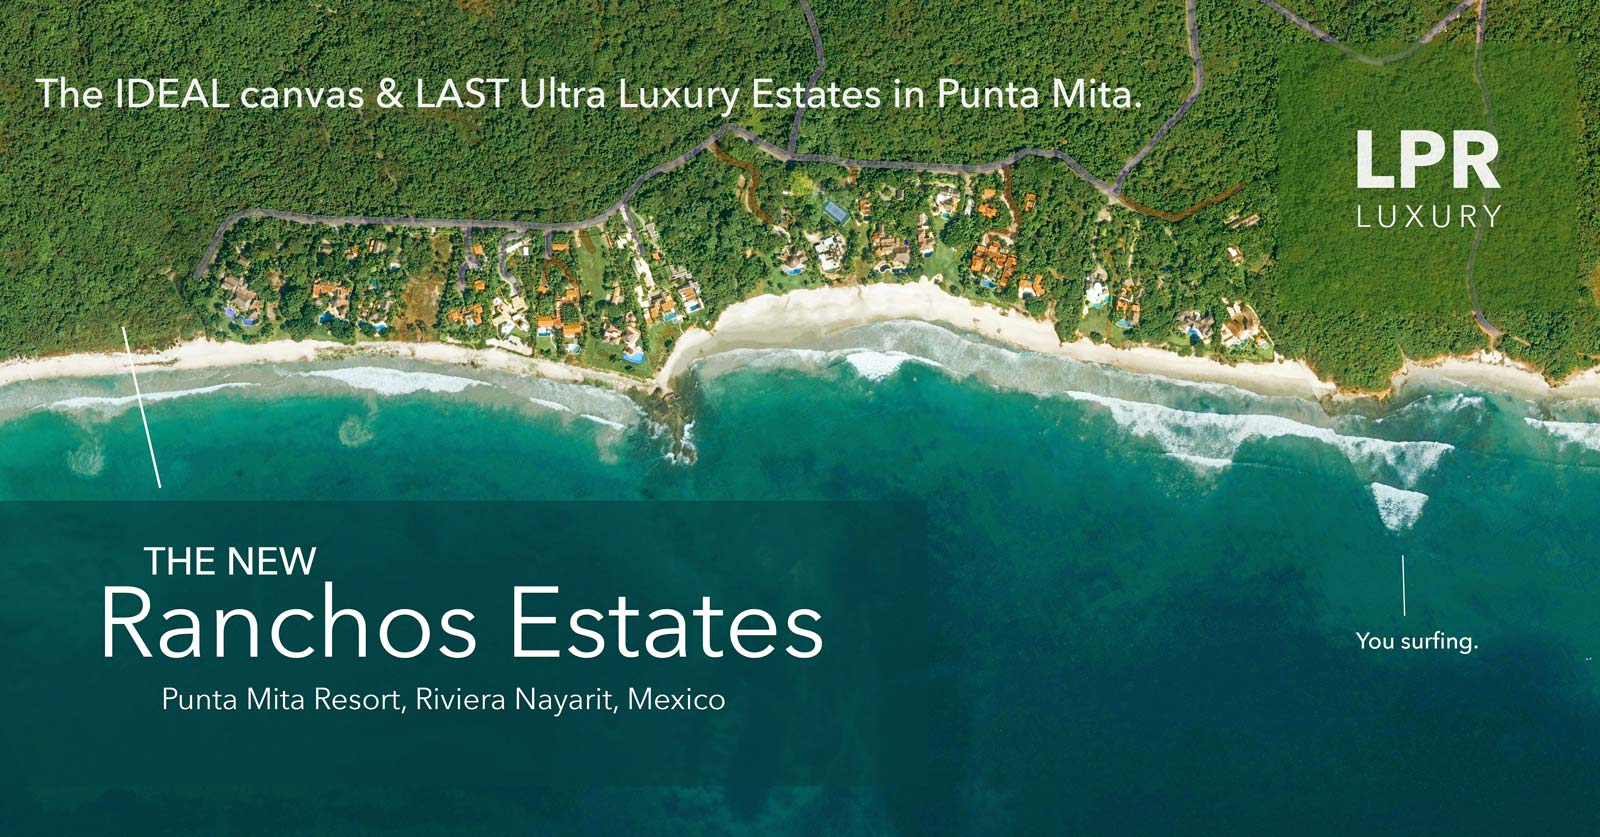 Careyes Mexico Map.Explore Lpr Luxury The Agency In Luxury Punta Mita Real Estate And